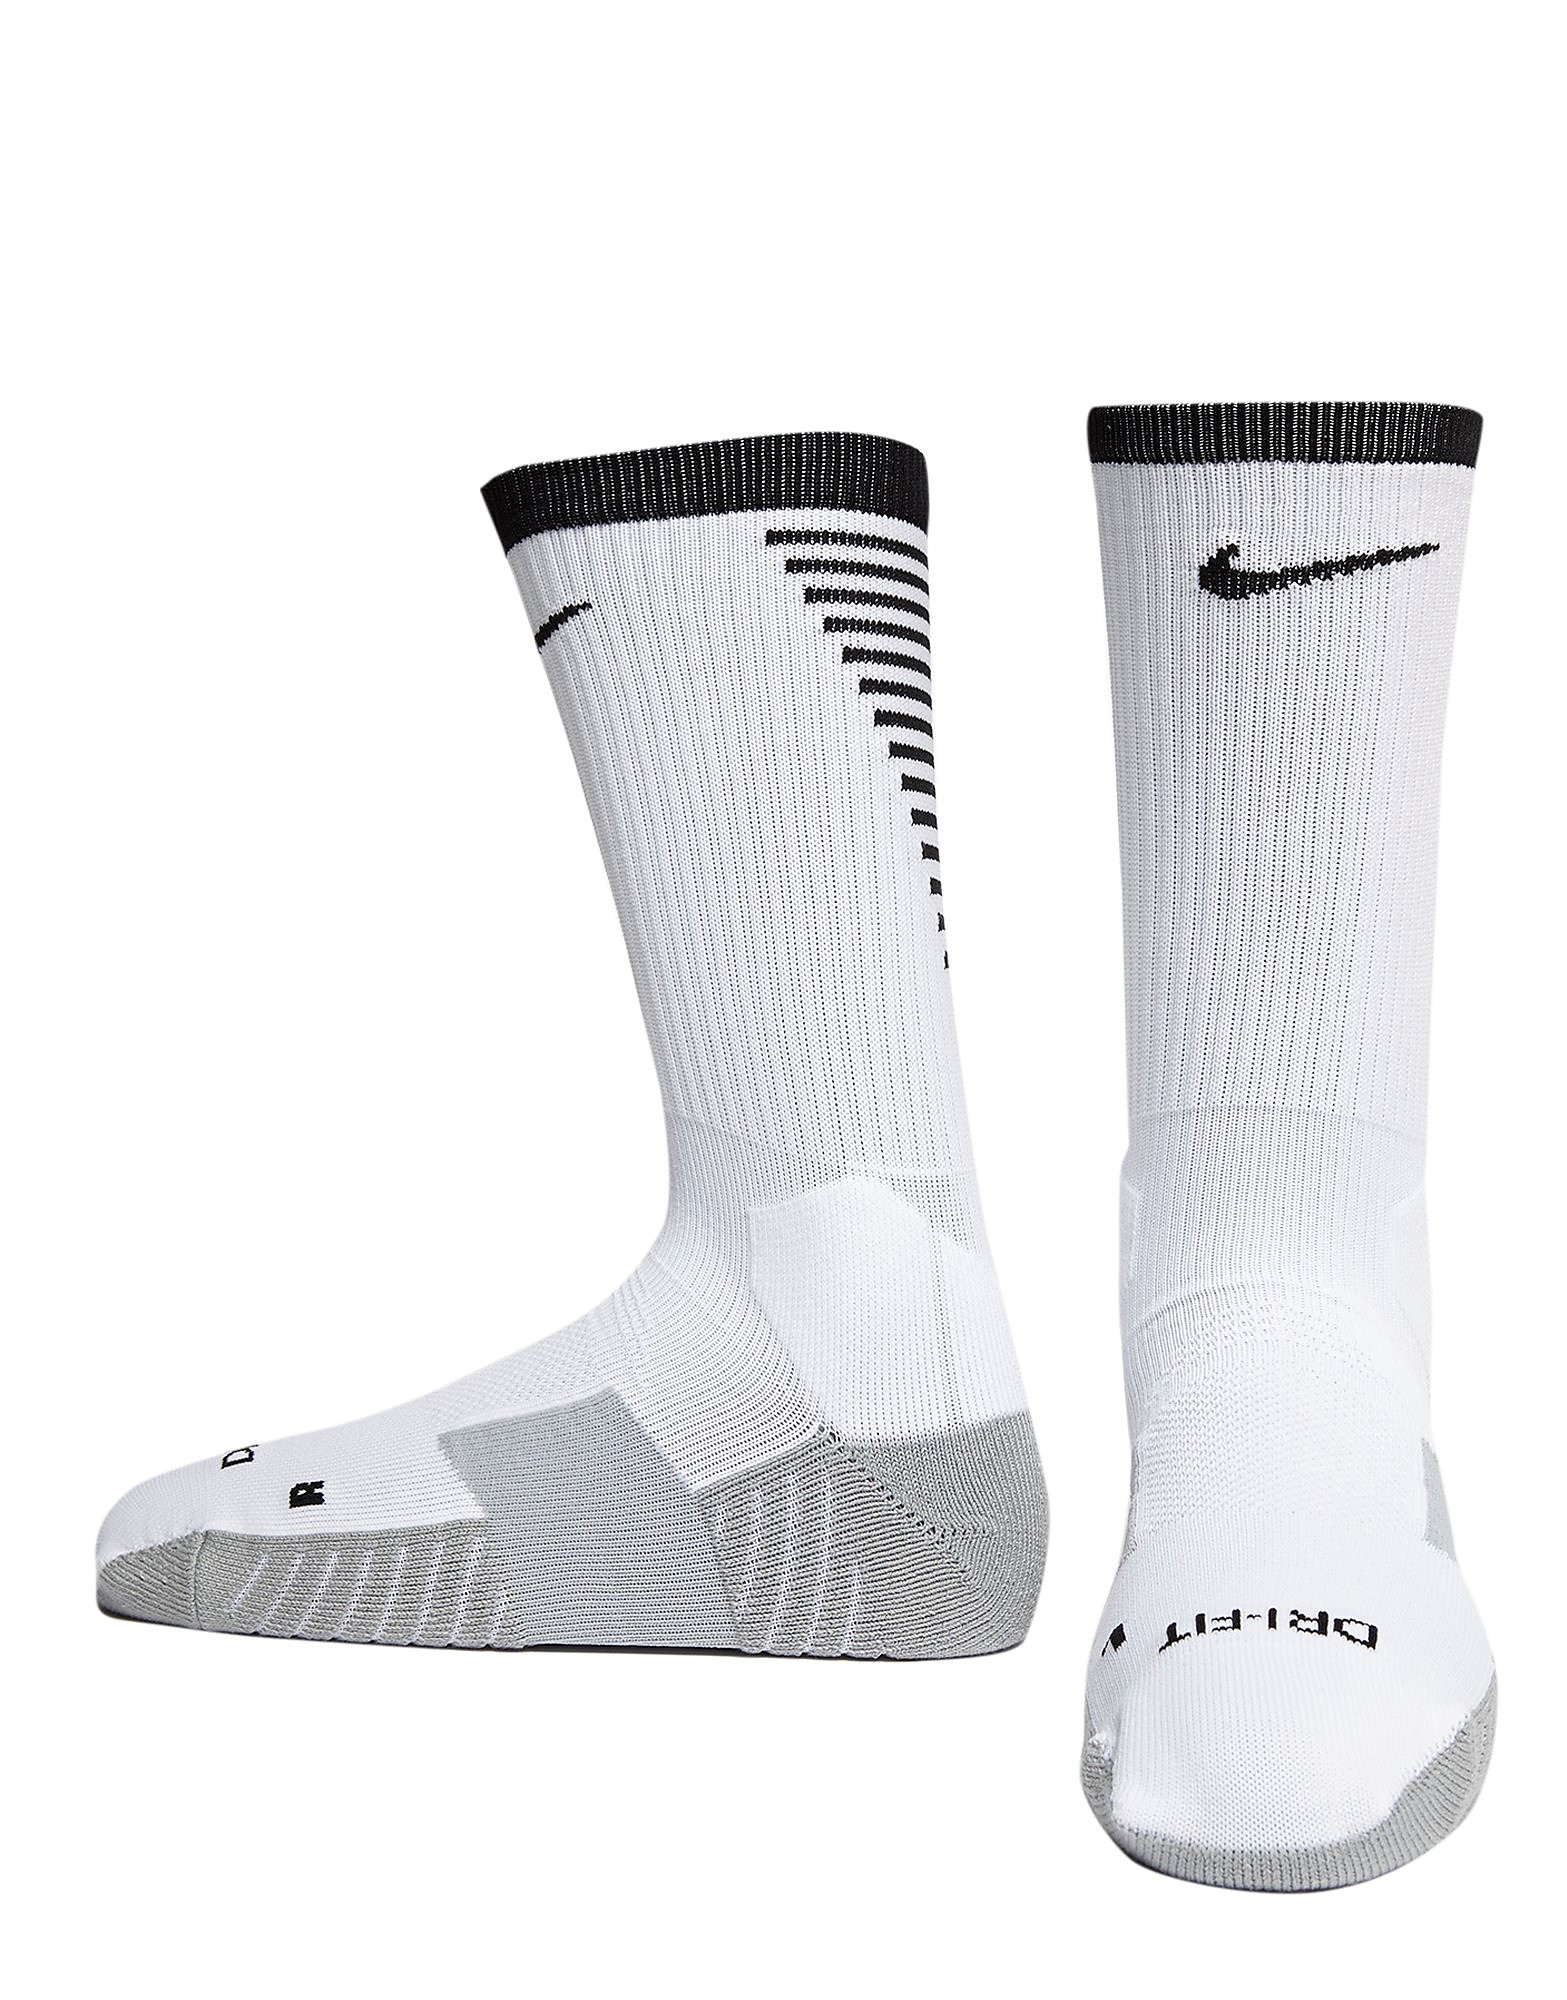 Nike Chaussettes Foot MatchFit Crew